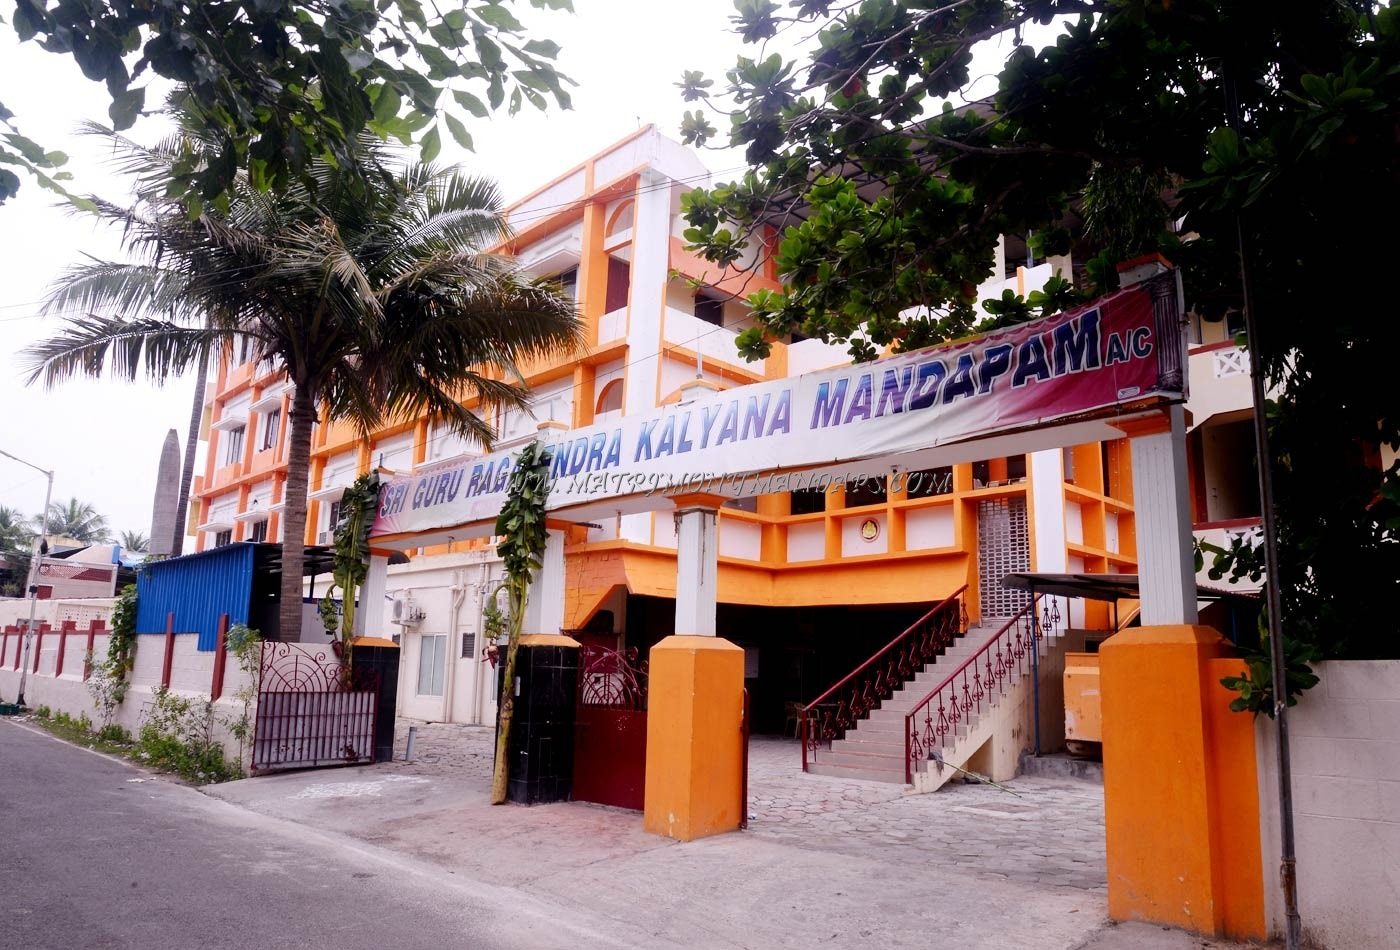 Find the availability of the Sri Guru Raghavendra Kalyana Mandapam (A/C) in Madipakkam, Chennai and avail special offers